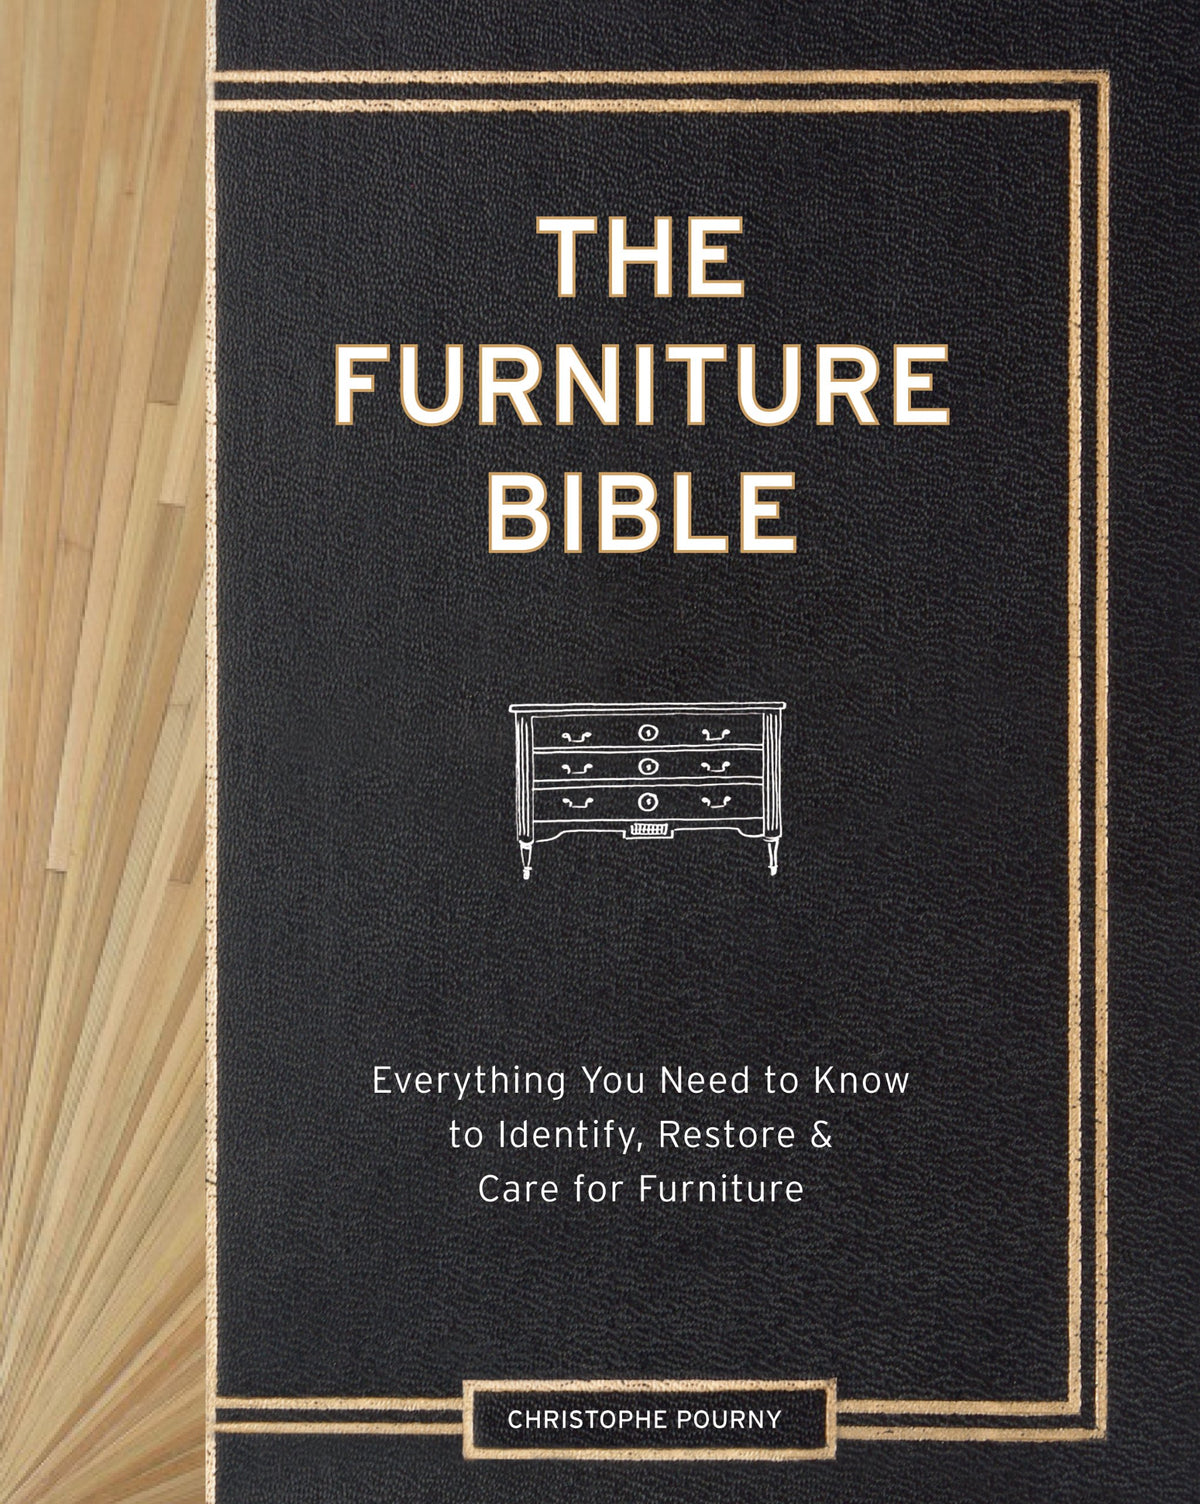 Furniture Bible - Everything You Need to Know to Identify, Restore & Care for Furniture